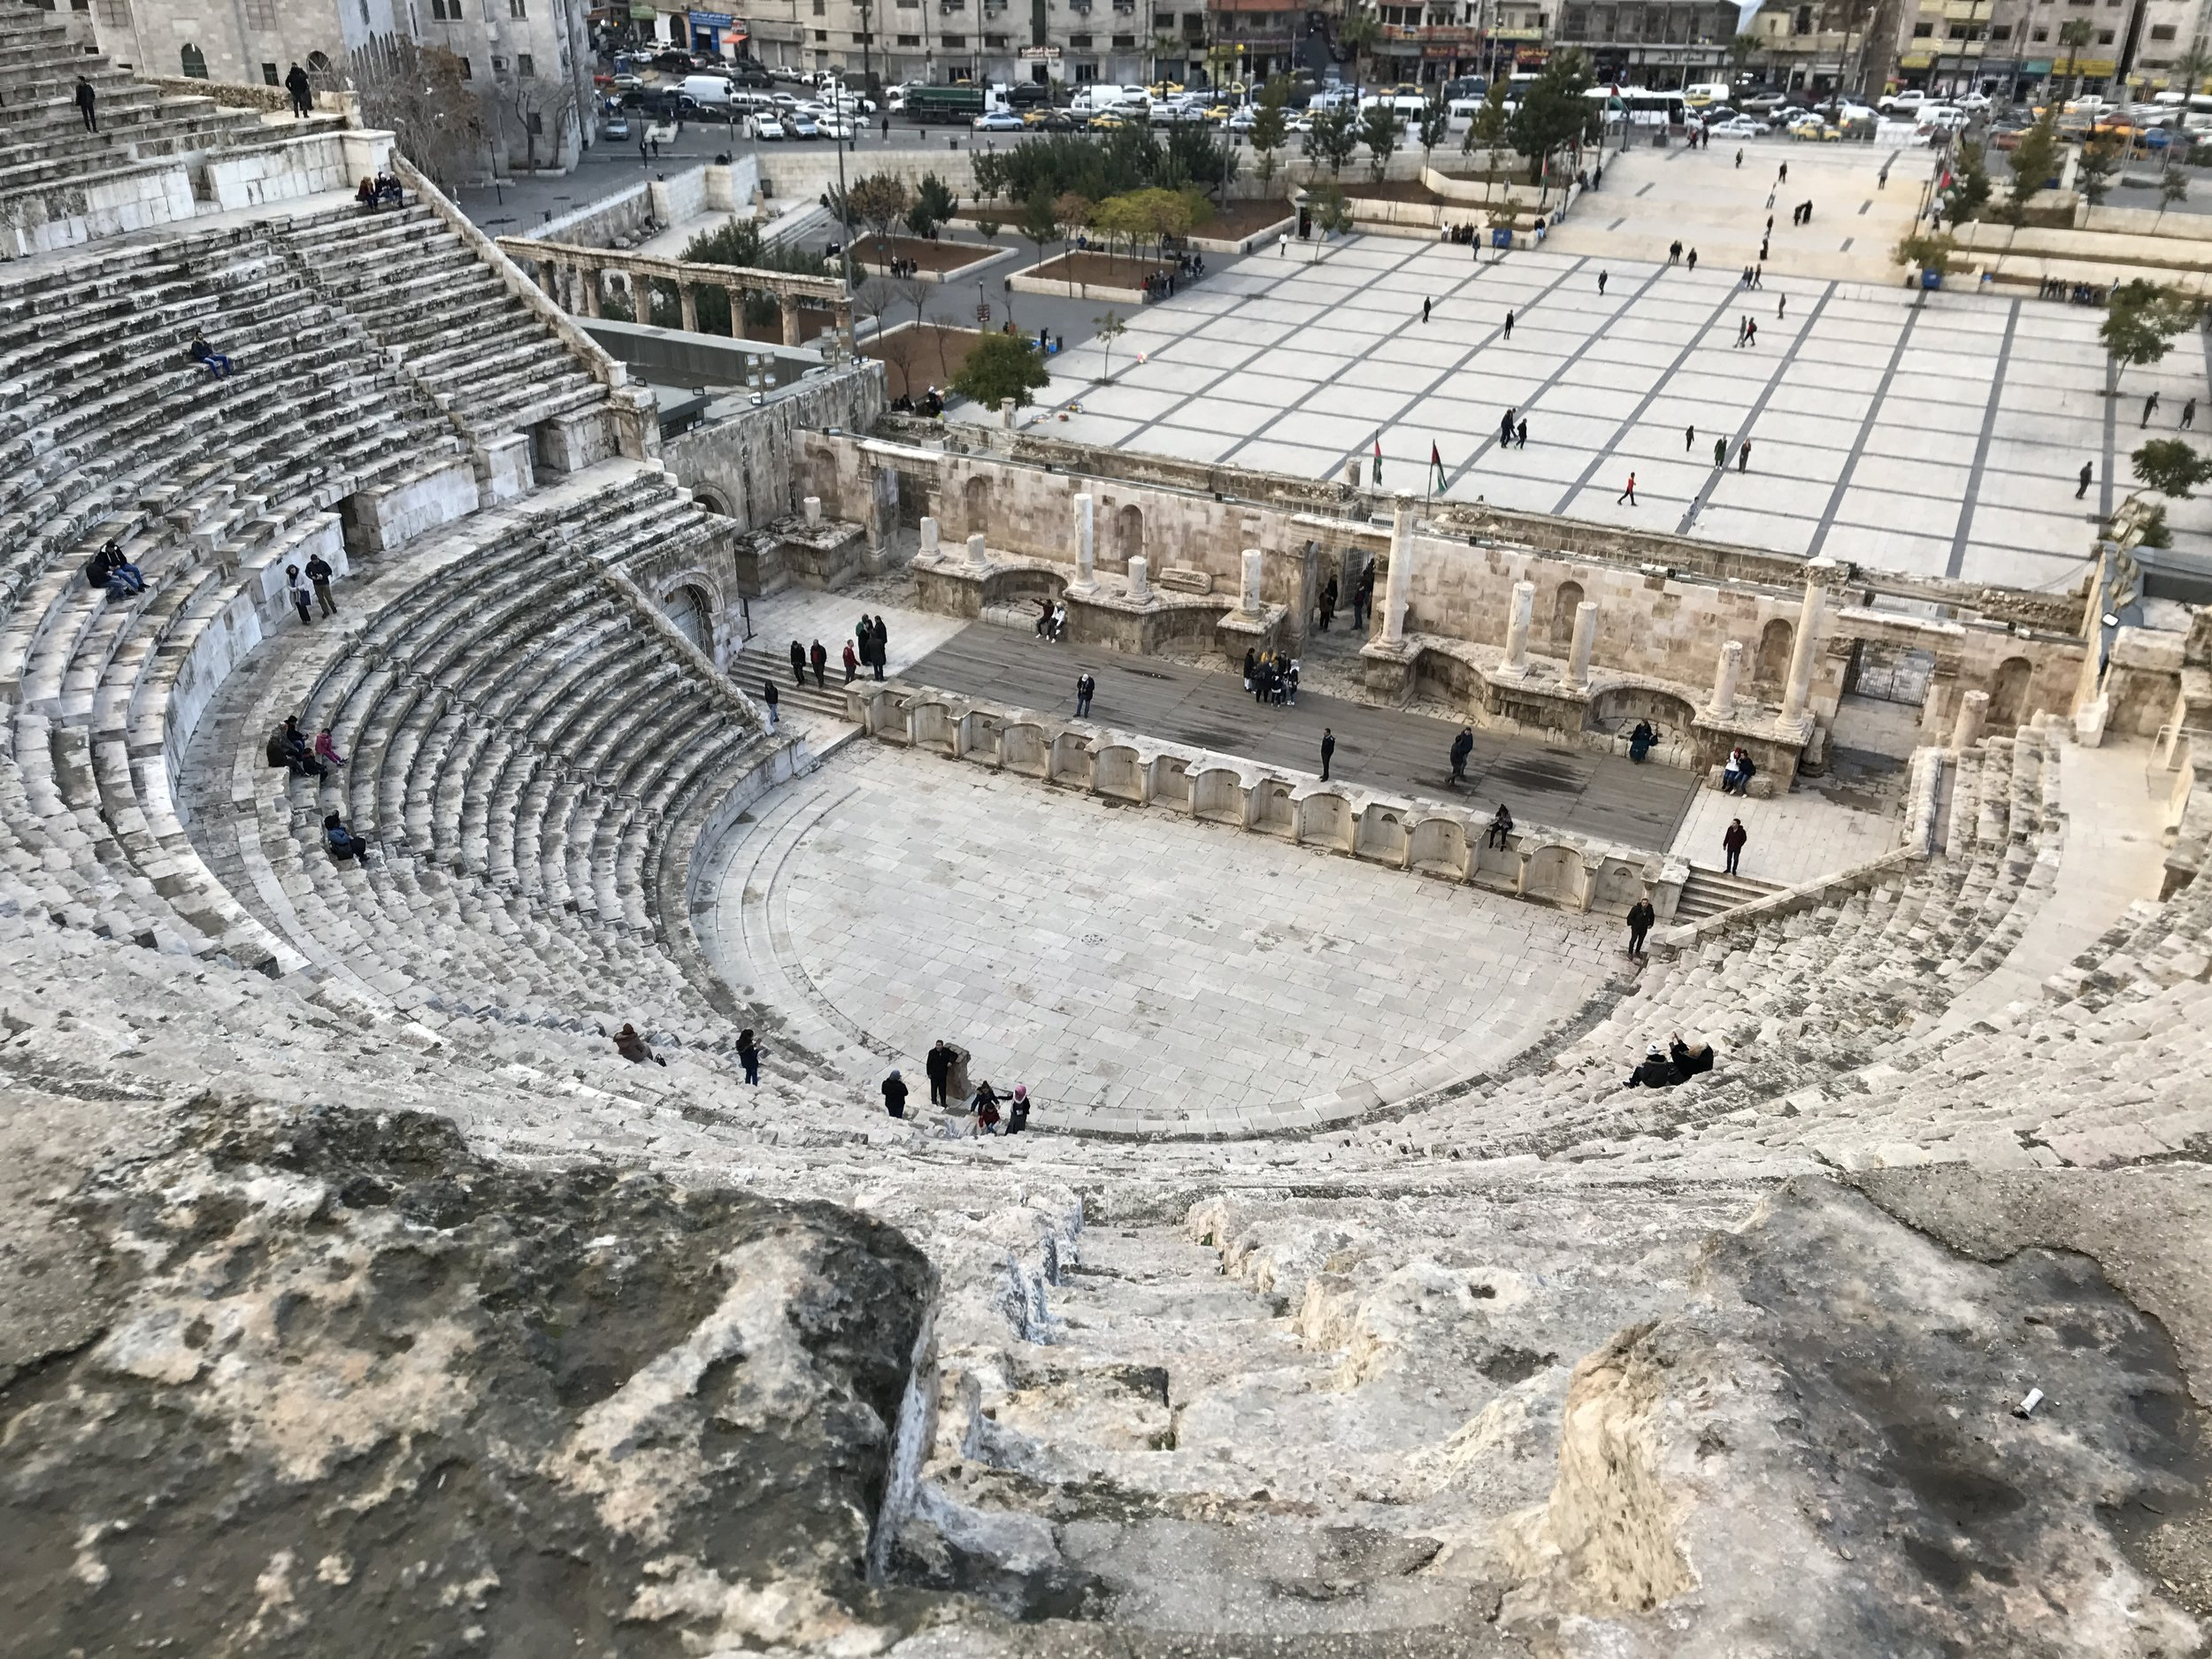 The view from the top of the Roman Amphitheater. Photo Credit: Samantha Manno, Spring 2018.